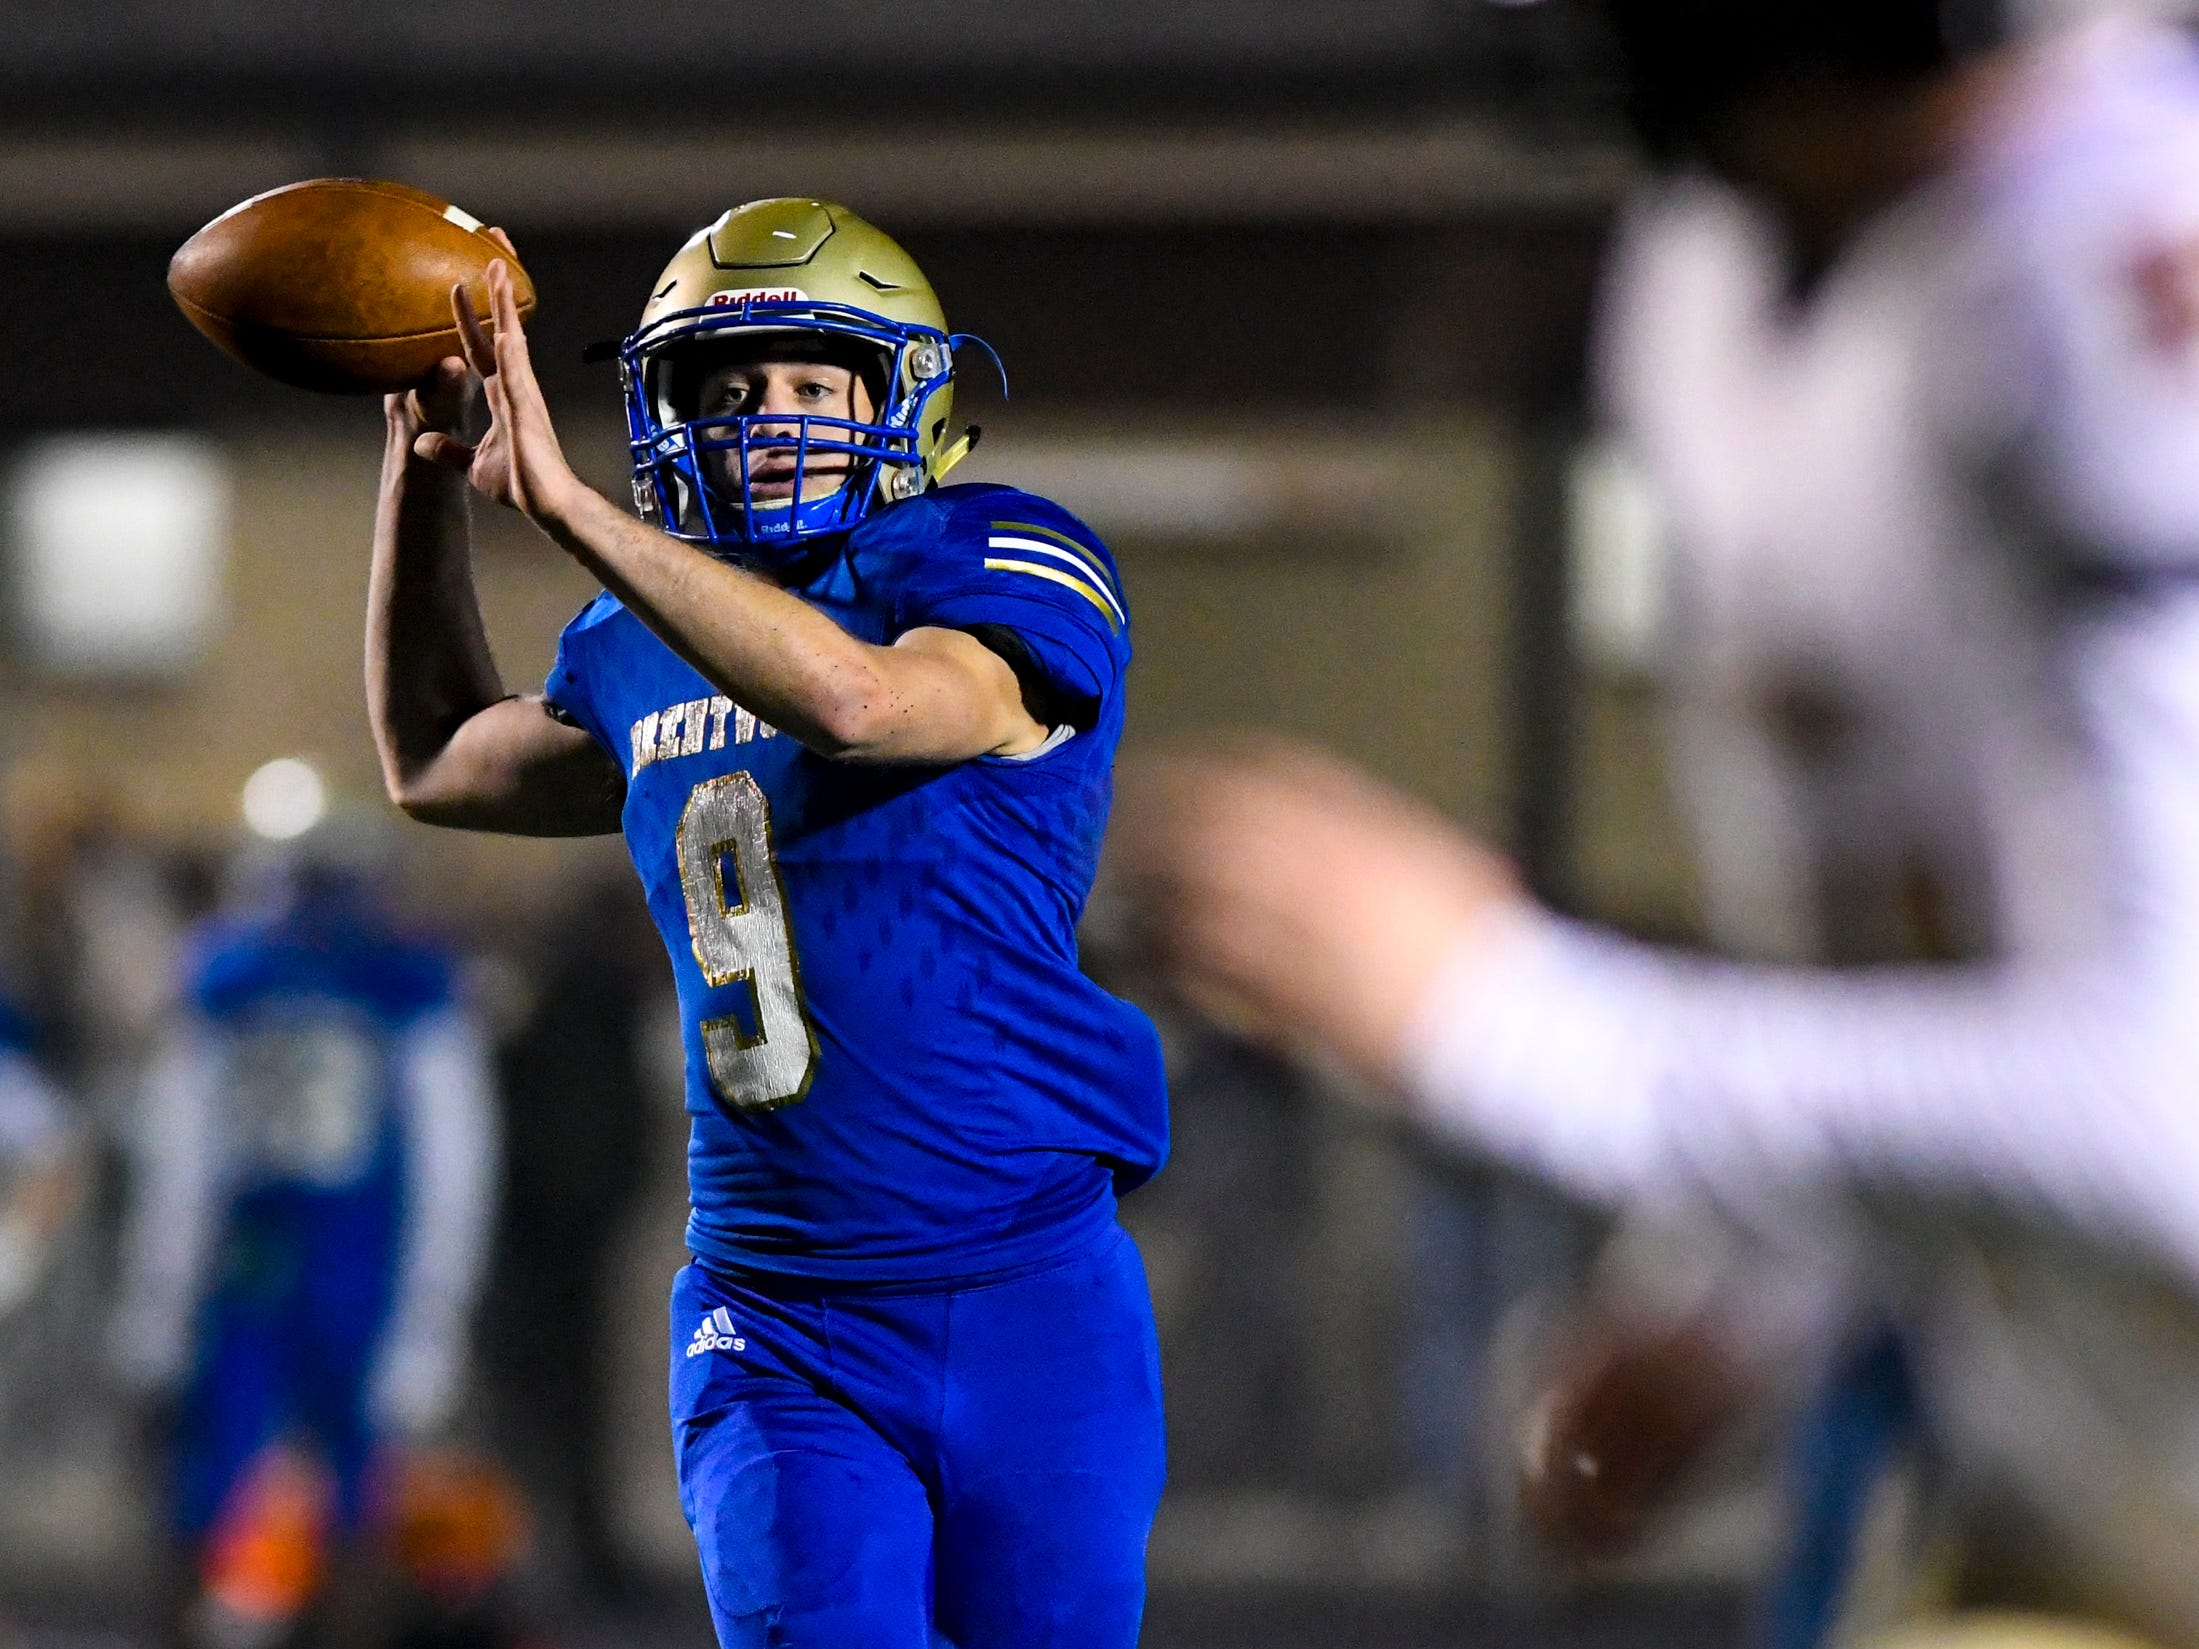 Brentwood's Dylan Stevens (9) passes during Brentwood's game against Ravenwood at Brentwood High School in Brentwood on Friday, Nov. 16, 2018.